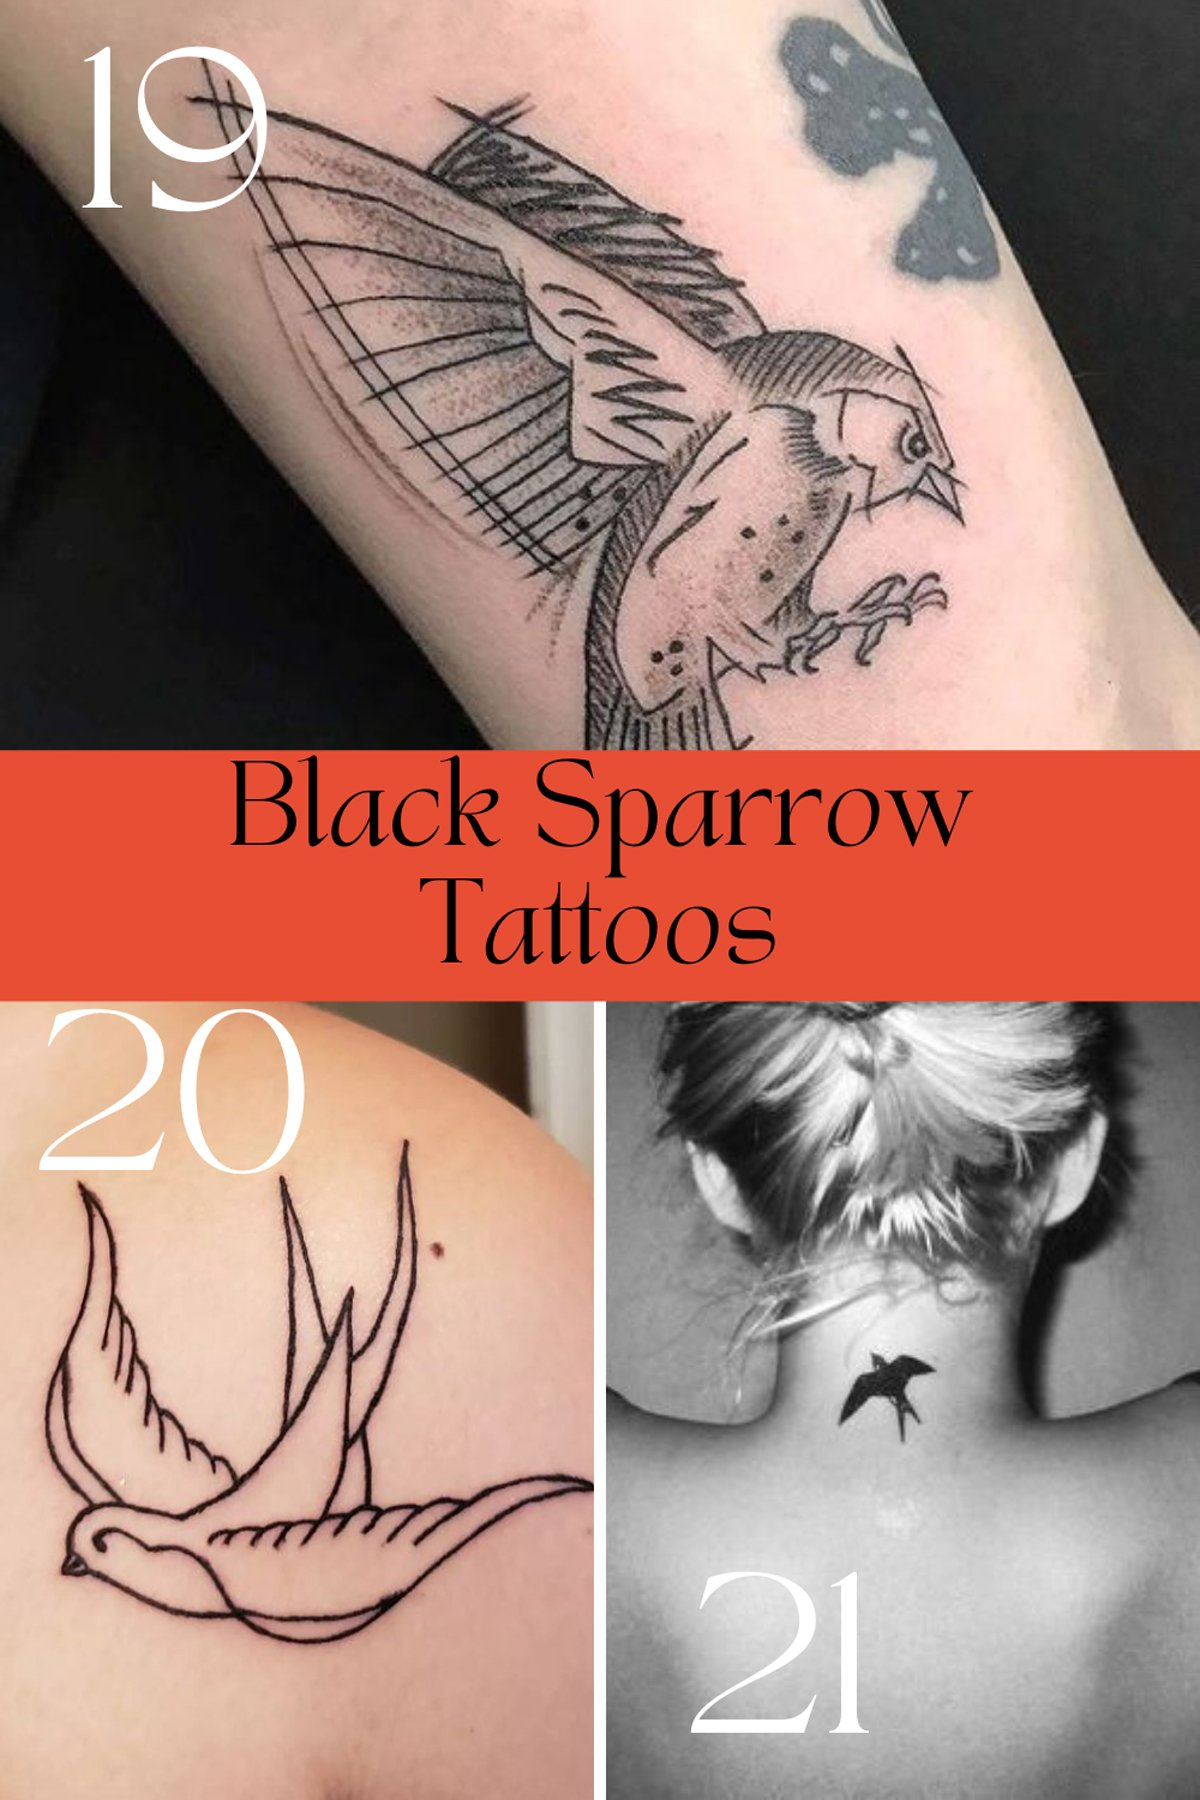 Black Sparrow Tattoos Meaning